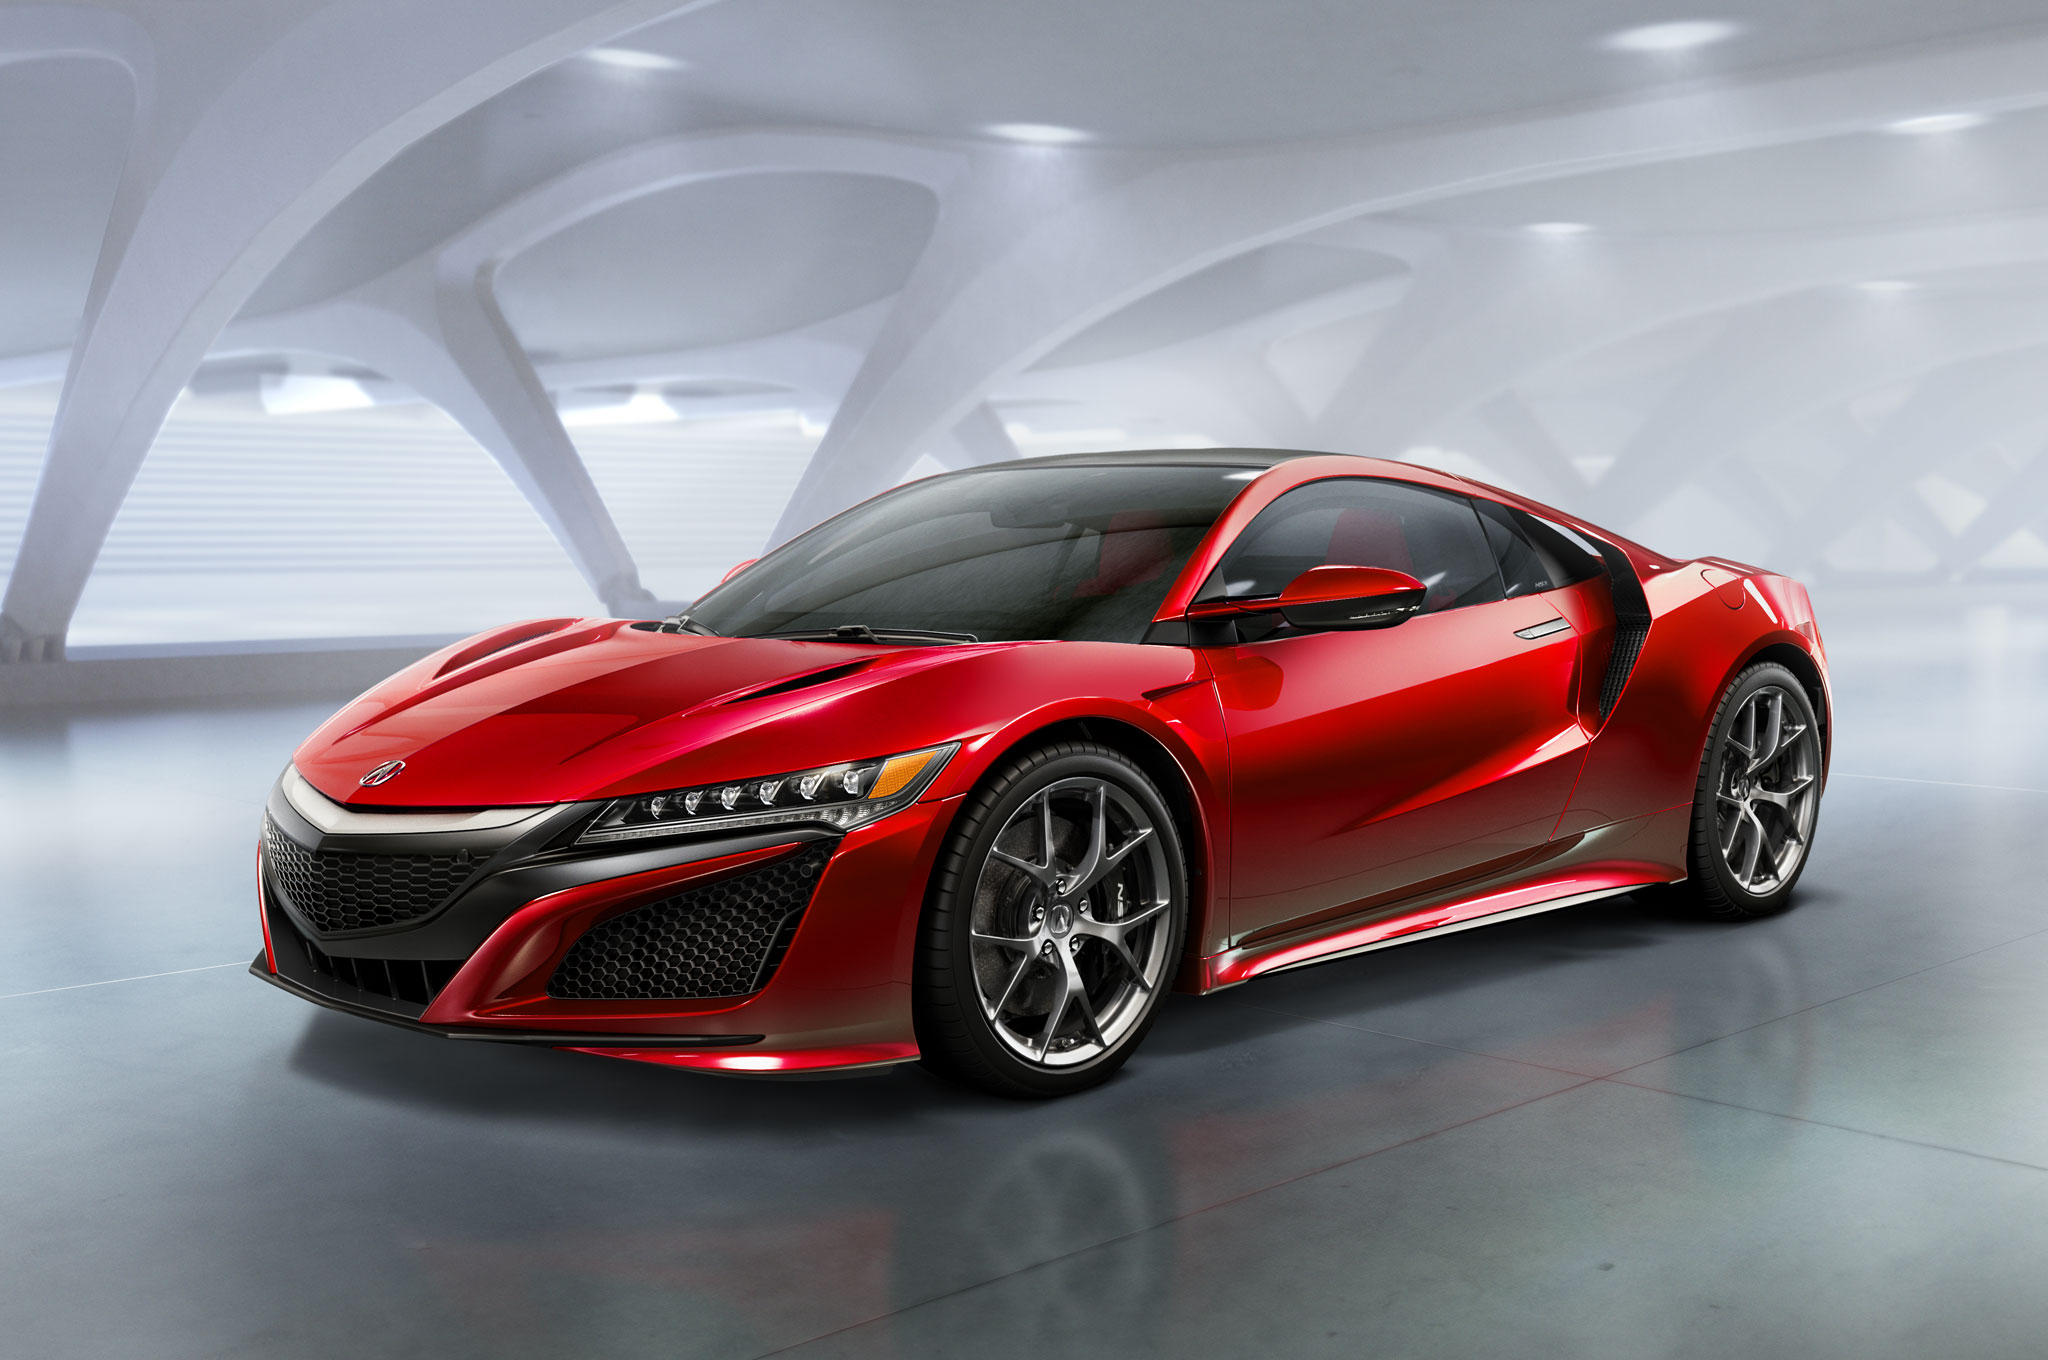 2016 Acura NSX Front Three Quarter2